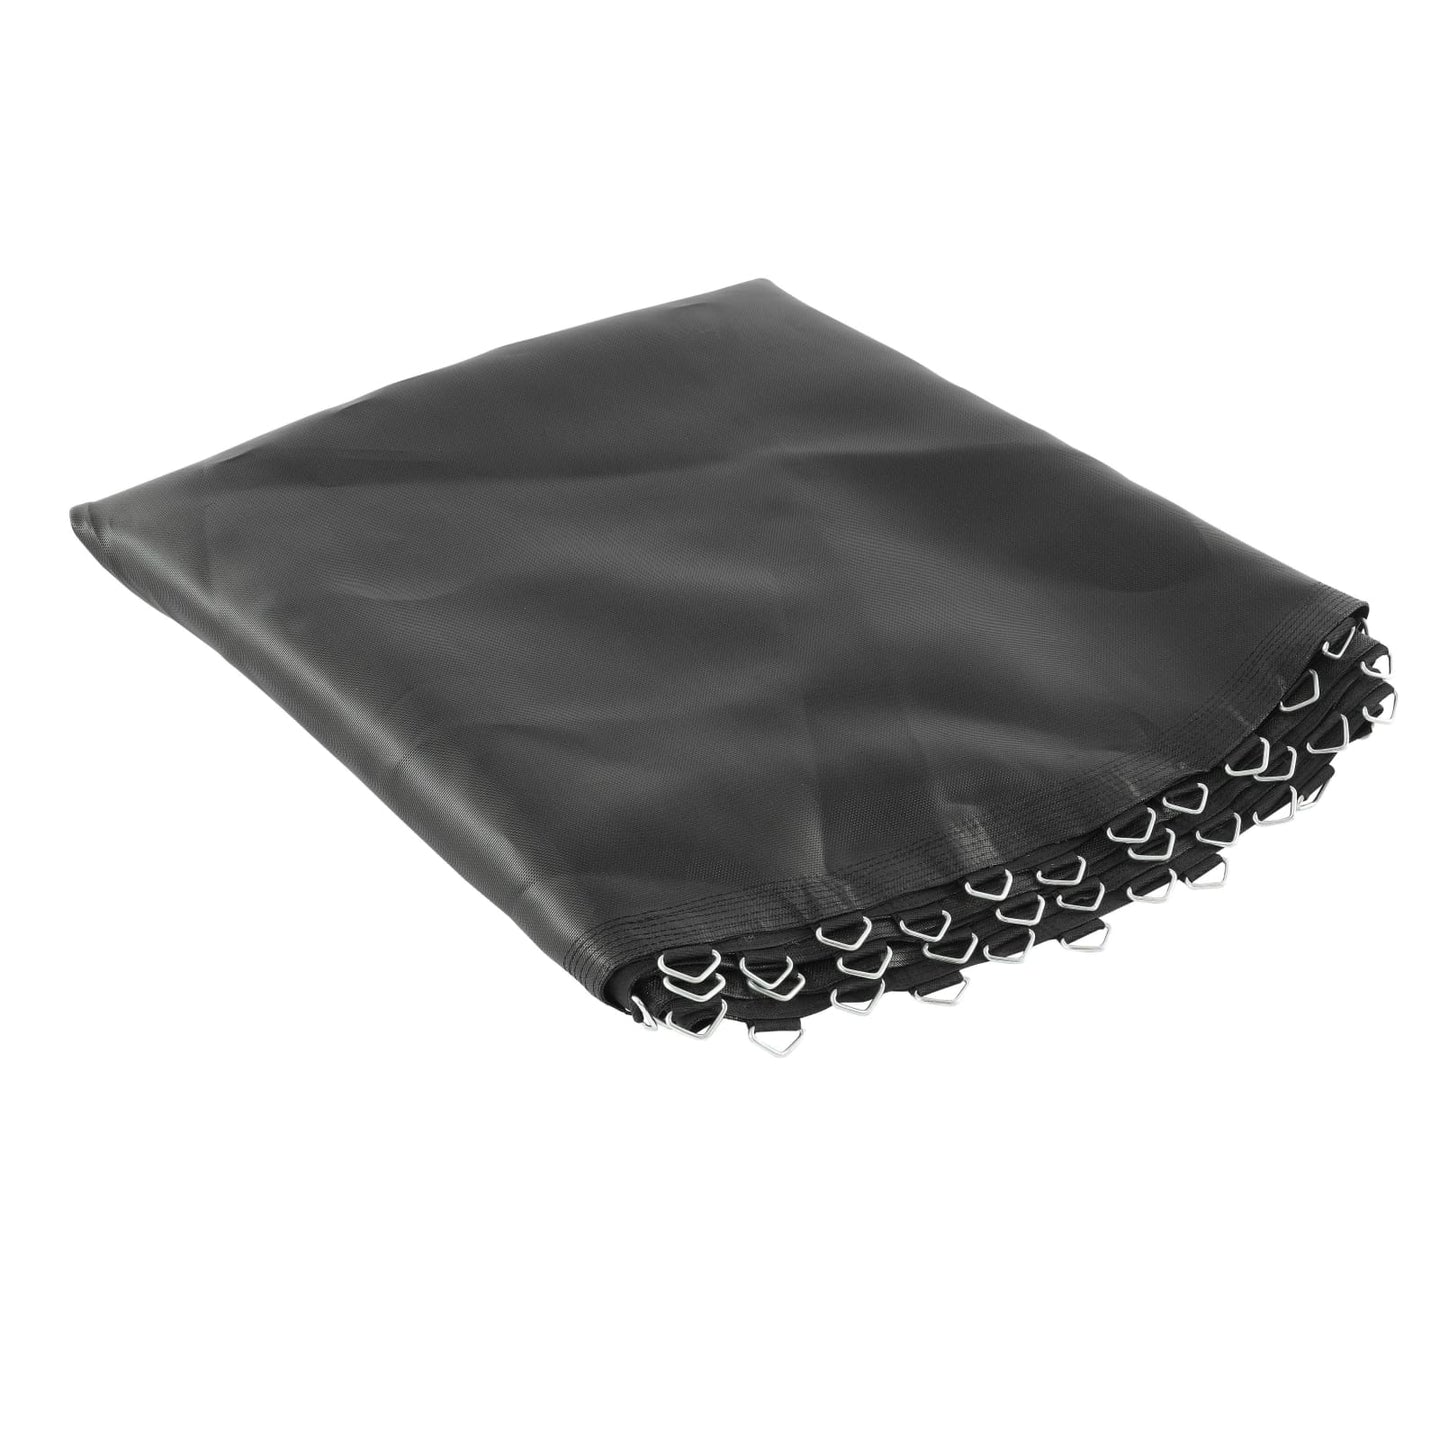 Upper Bounce Trampoline Replacement Jumping Mat Fits For 8 Ft. Round Frames W/ 40 V-Rings 5.5 Springs - Trampoline Replacements